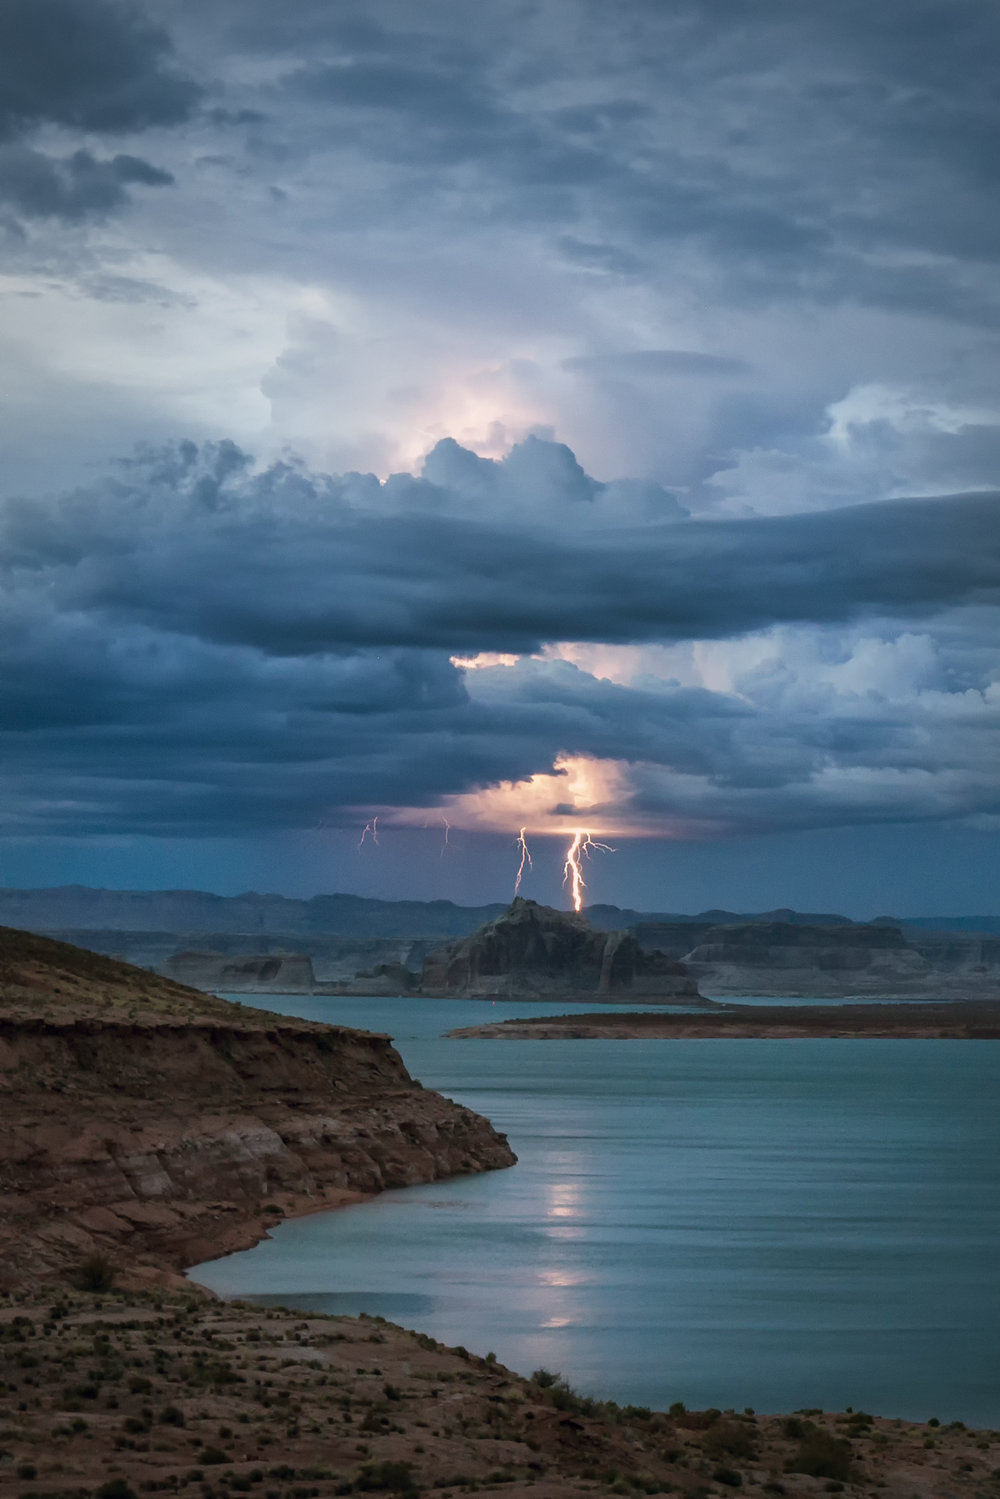 Distant Thunderstorm - Lake Powell, Arizona July 29, 2017.jpg